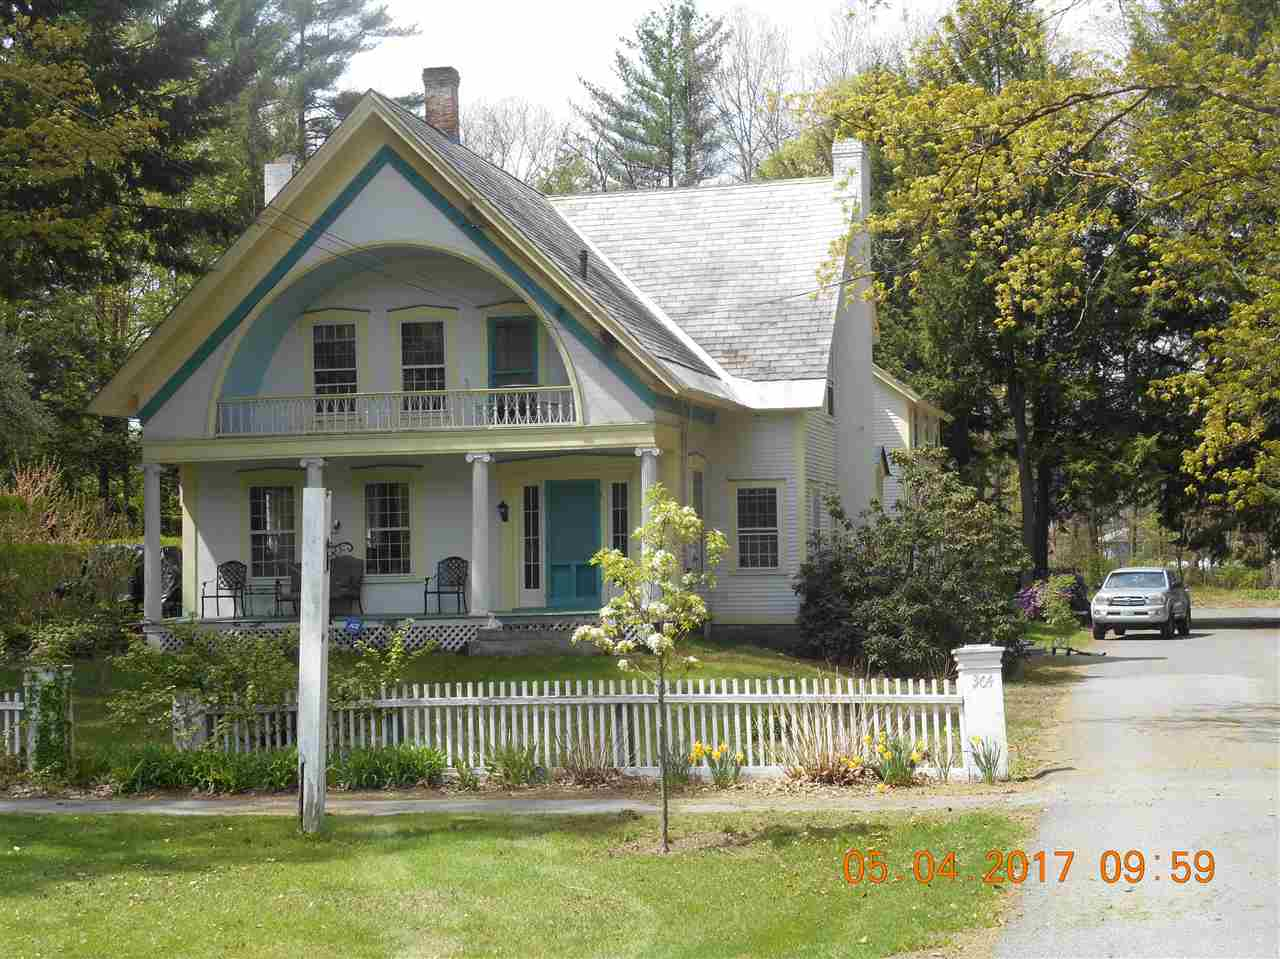 364 Main St., Charlestown, NH 03603